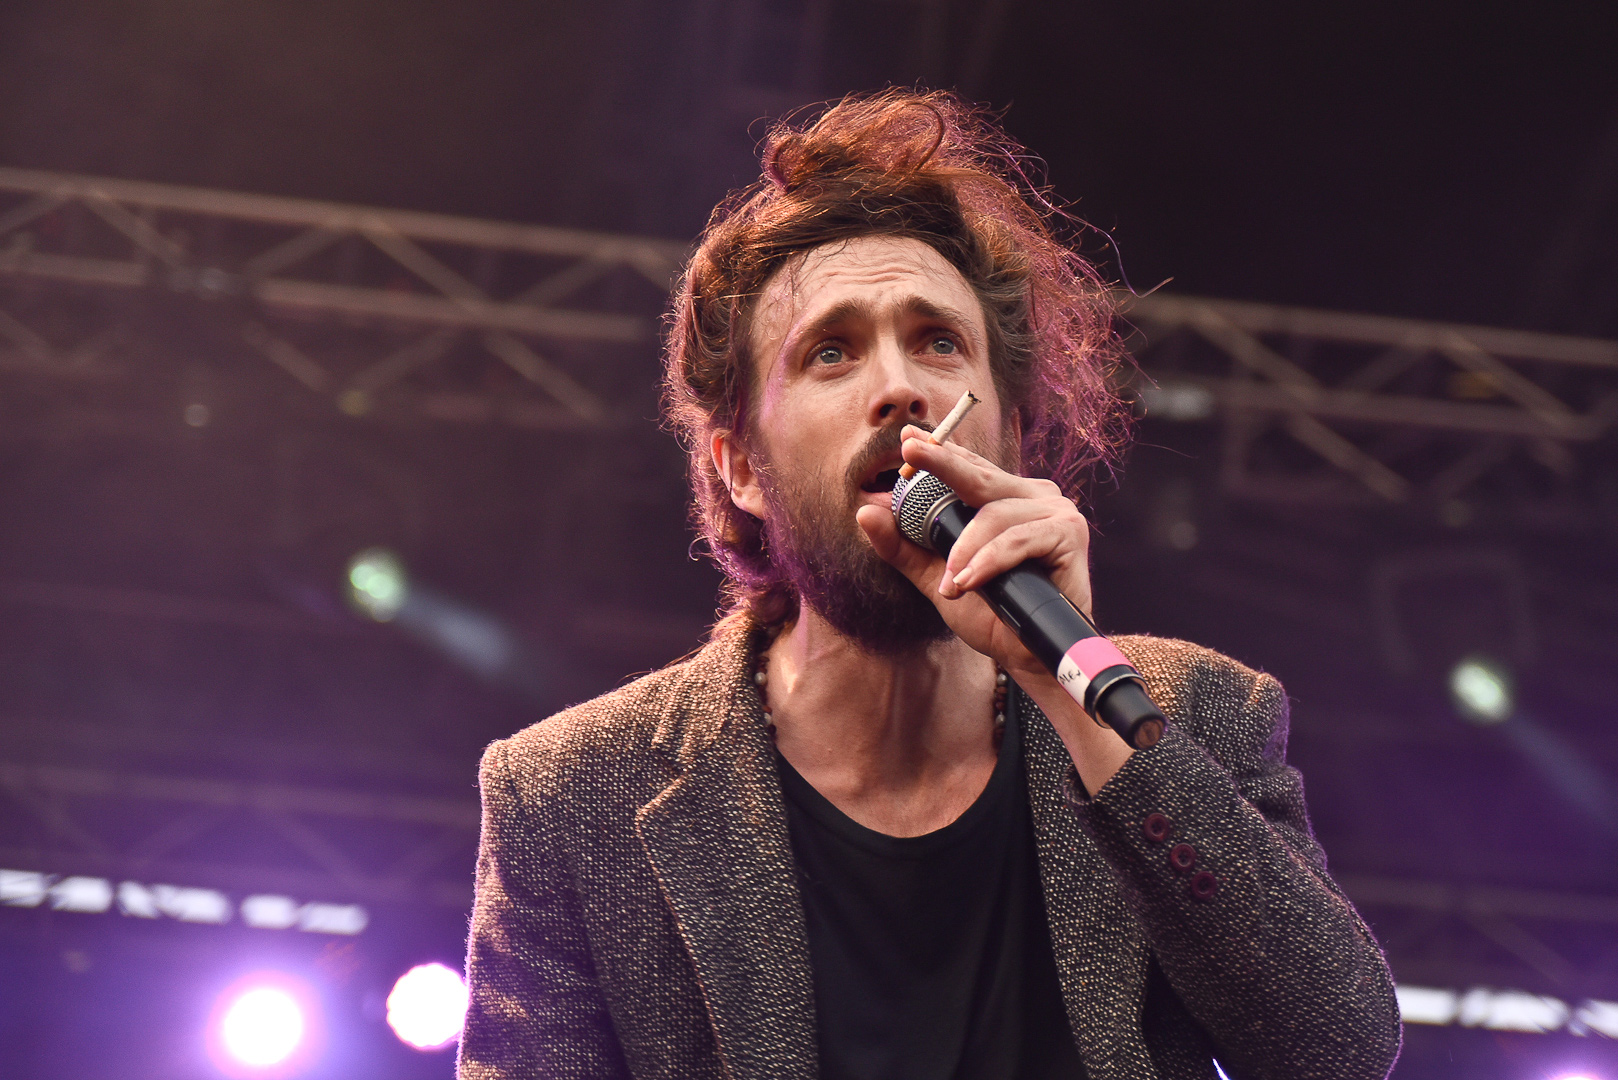 edward-sharpe-and-the-magnetic-zeros-music-wins-festival-tenopolis-13-noviembre-2016-victoria-mourelle-indie-hoy-1811